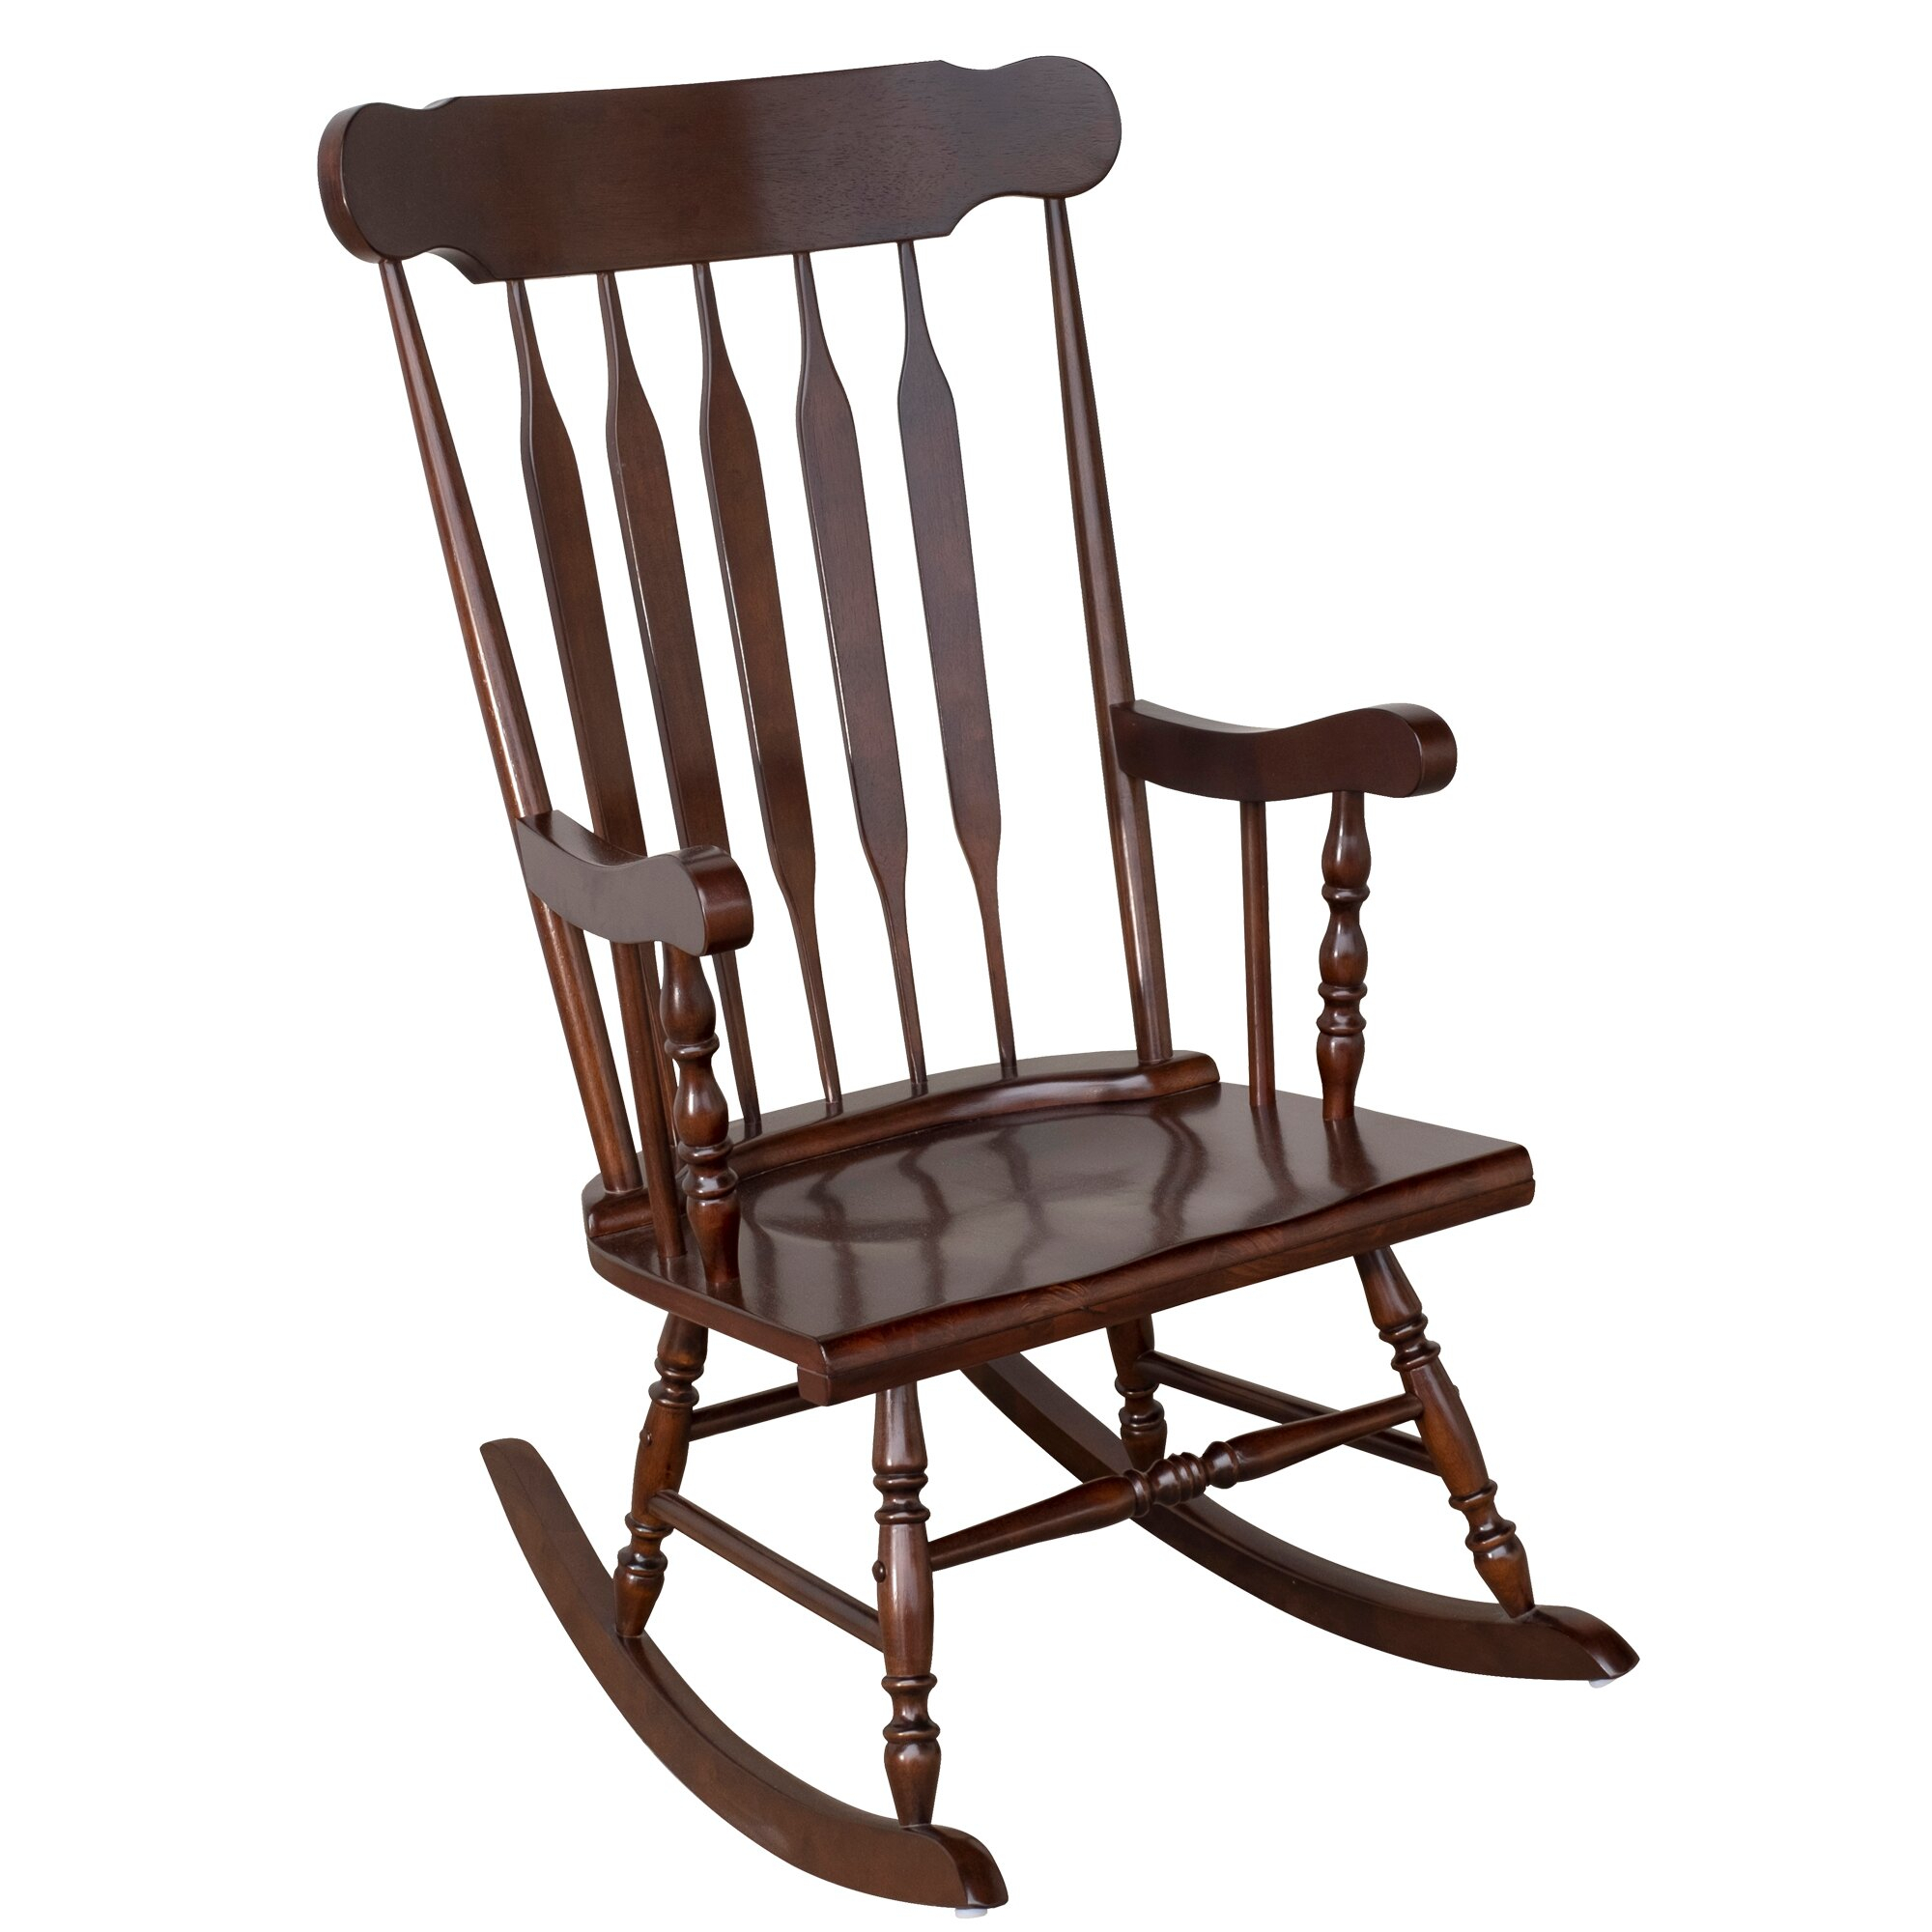 Aosom: Homcom Traditional Slat Wood Rocking Chair Indoor Porch Furniture  For Patio Living Room – Dark Brown | Rakuten Throughout Elegant Tobacco Brown Wooden Rocking Chairs (#2 of 20)